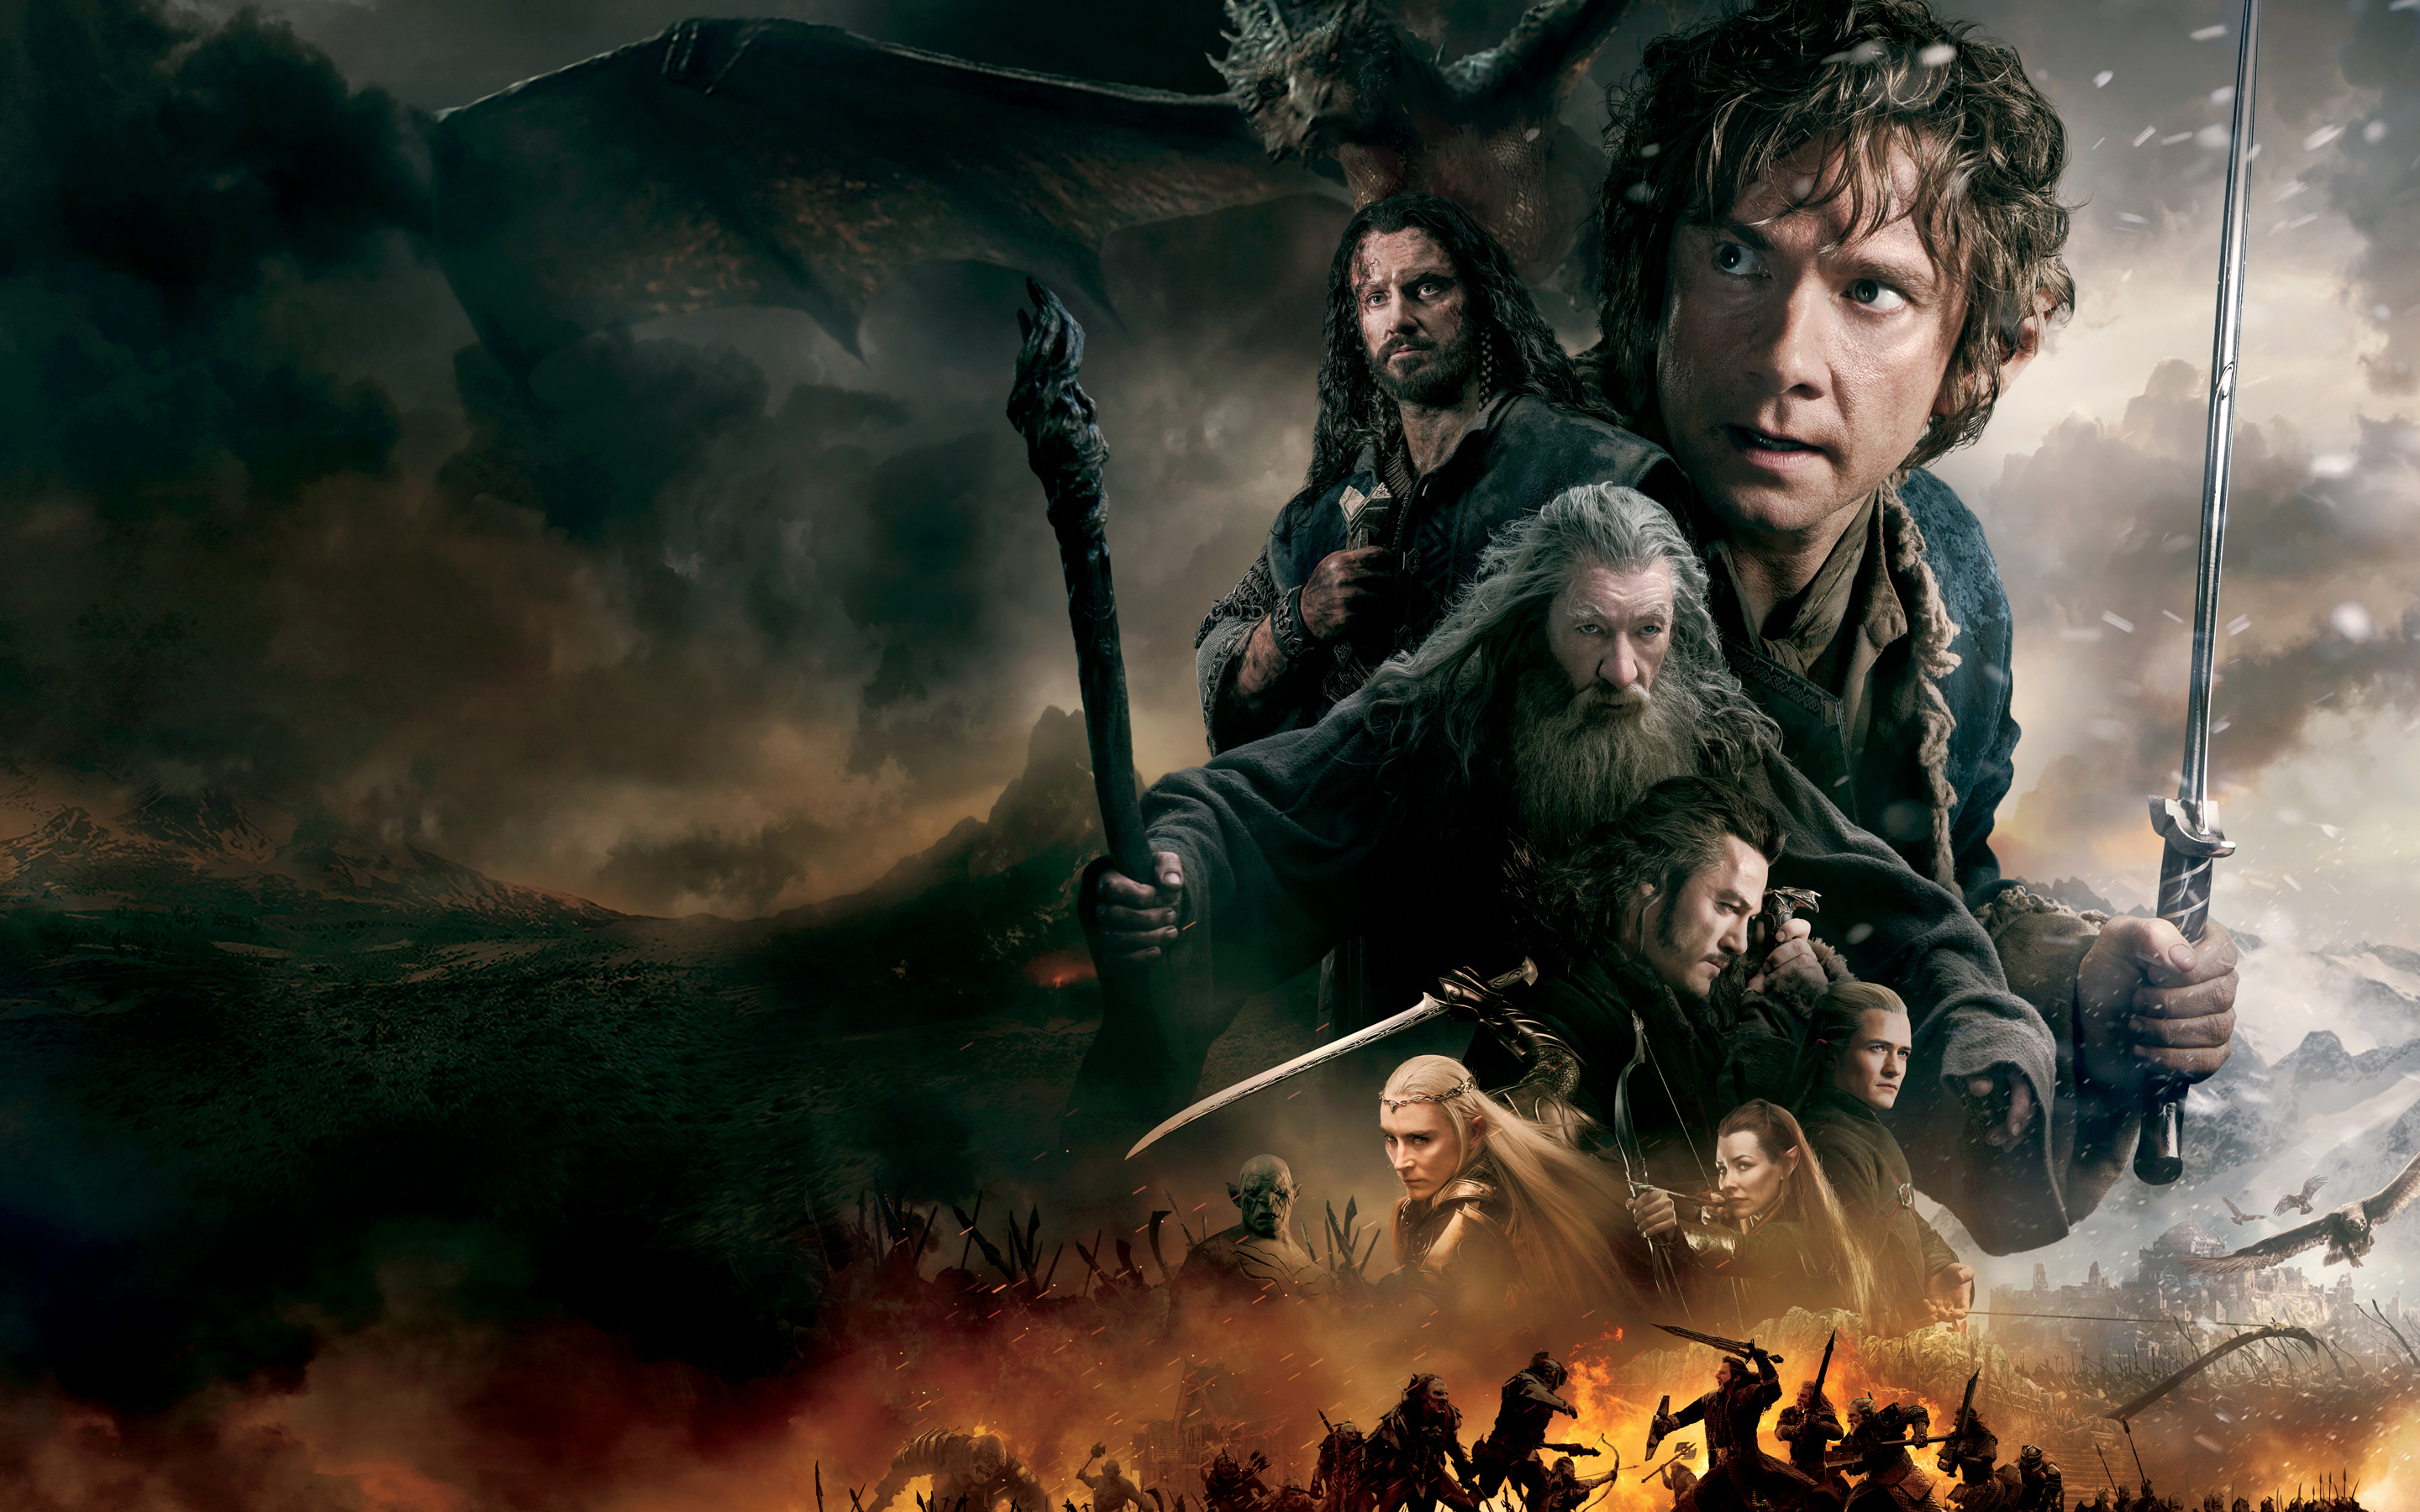 The Hobbit The Battle of the Five Armies Wallpaper 2   2880 X 2880x1800